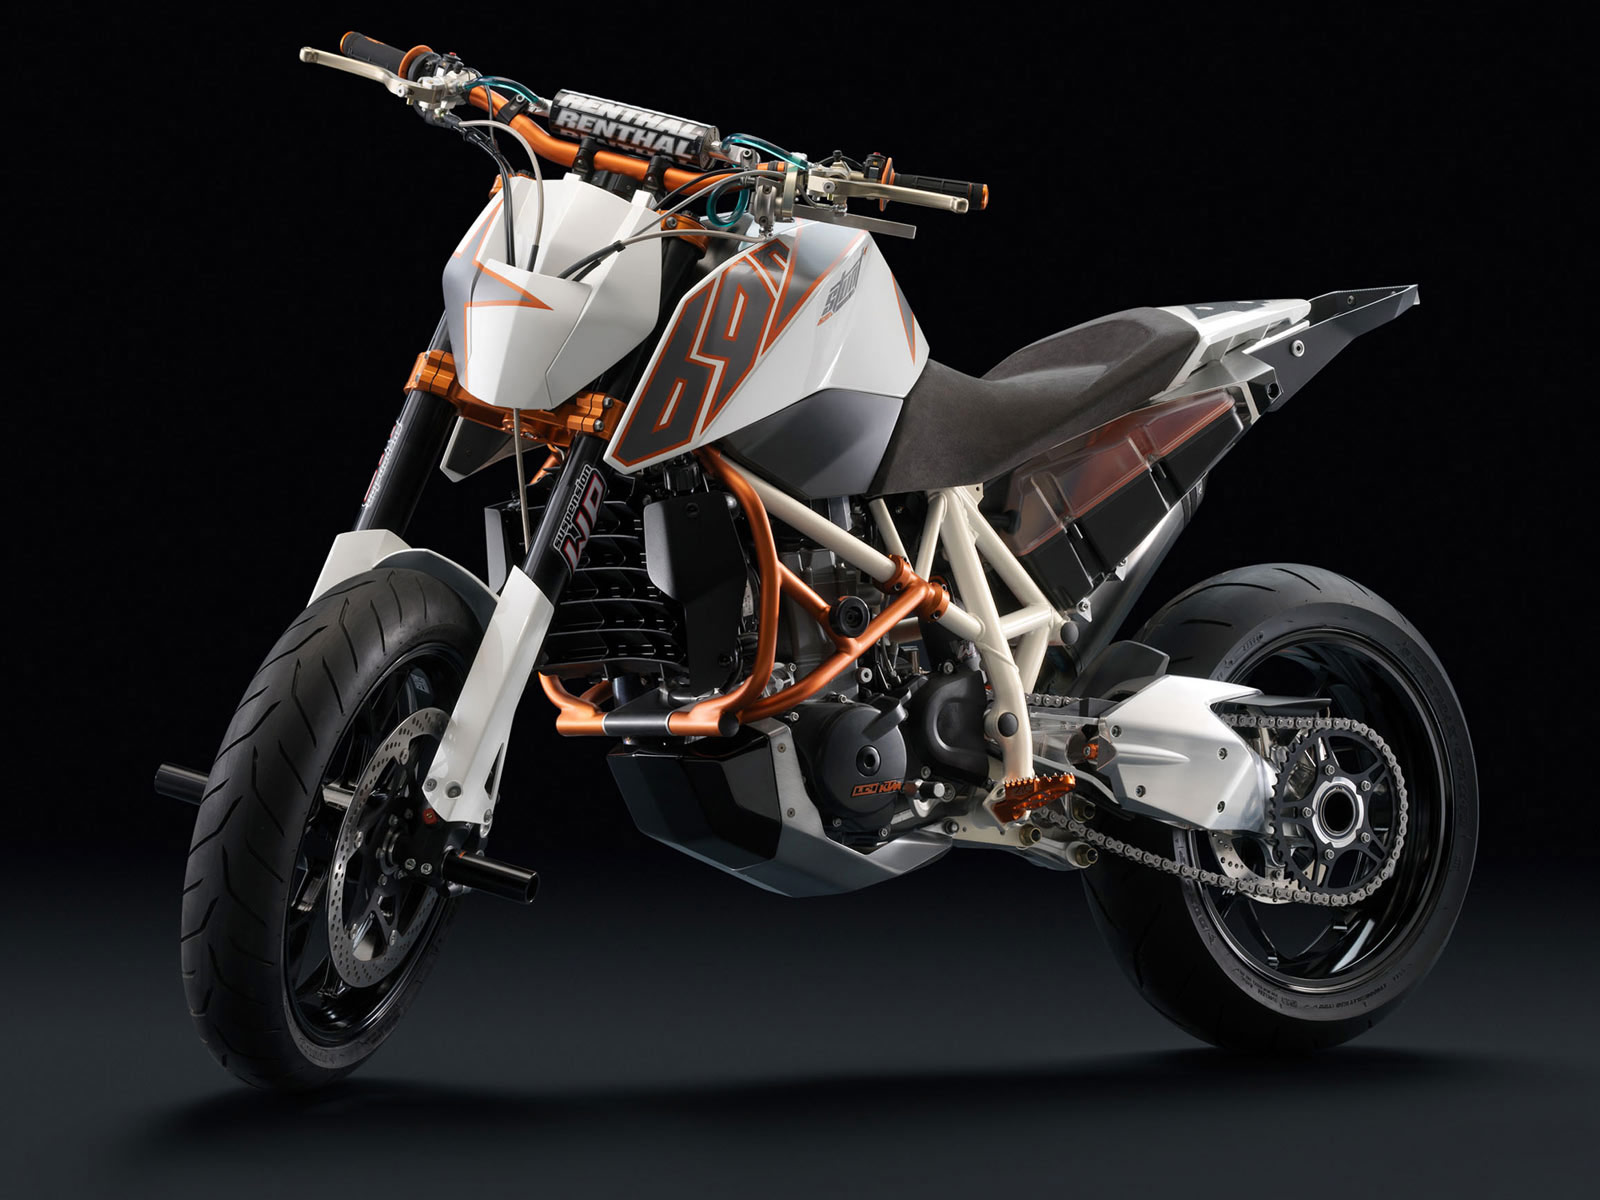 Ktm 690 smc r wallpapers for desktop - Http 4 Bp Blogspot Com Q8fuezmtsns Tnv2bnae_oi